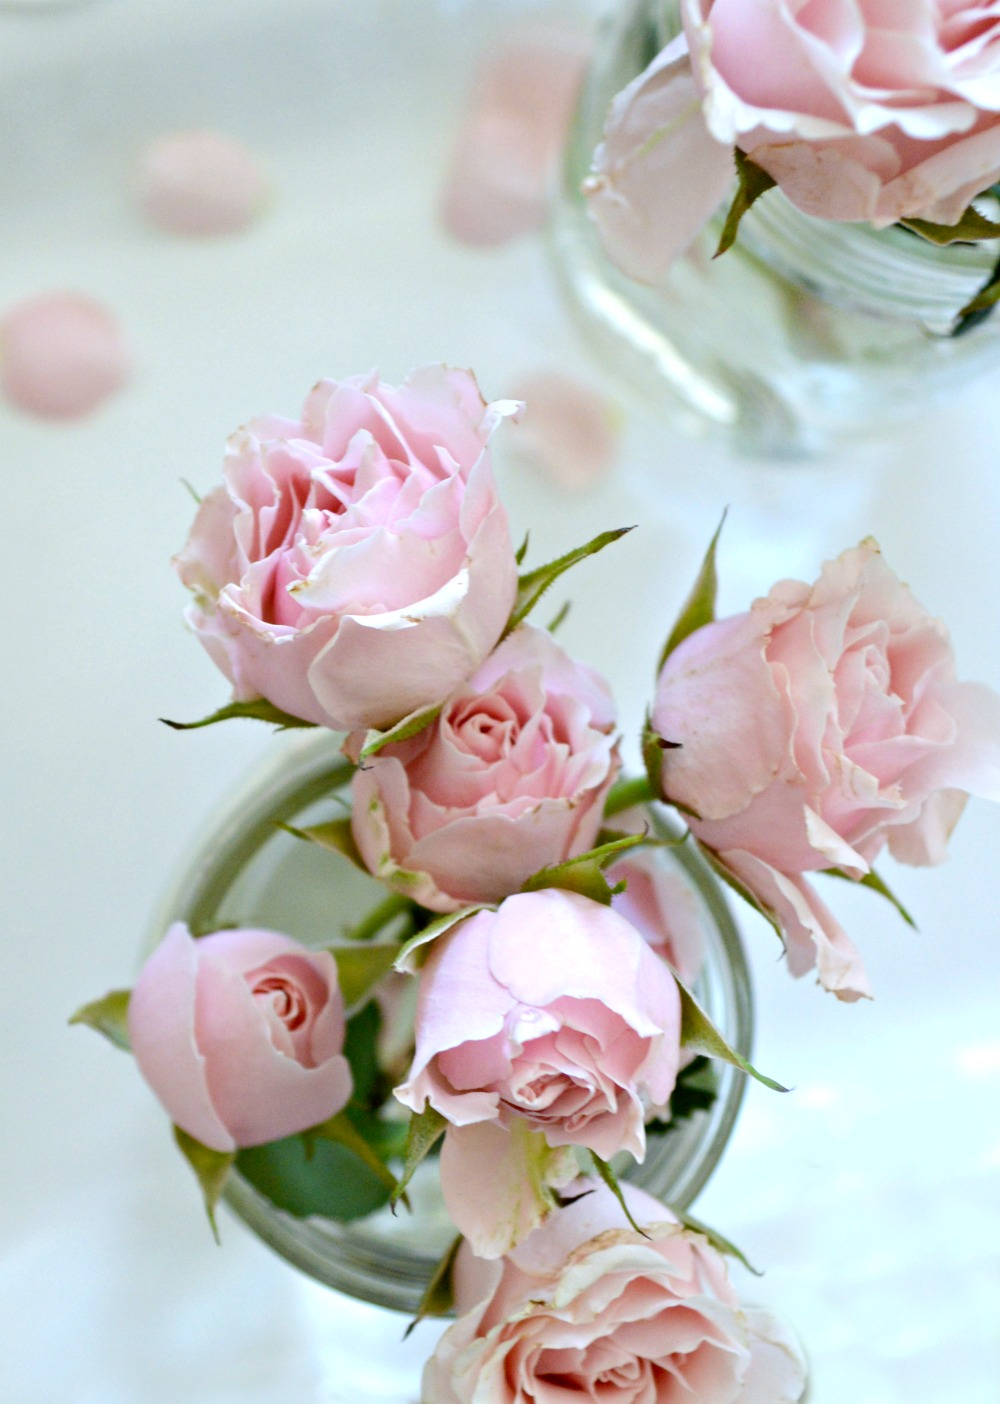 Simple display of baby pink roses, beautiful